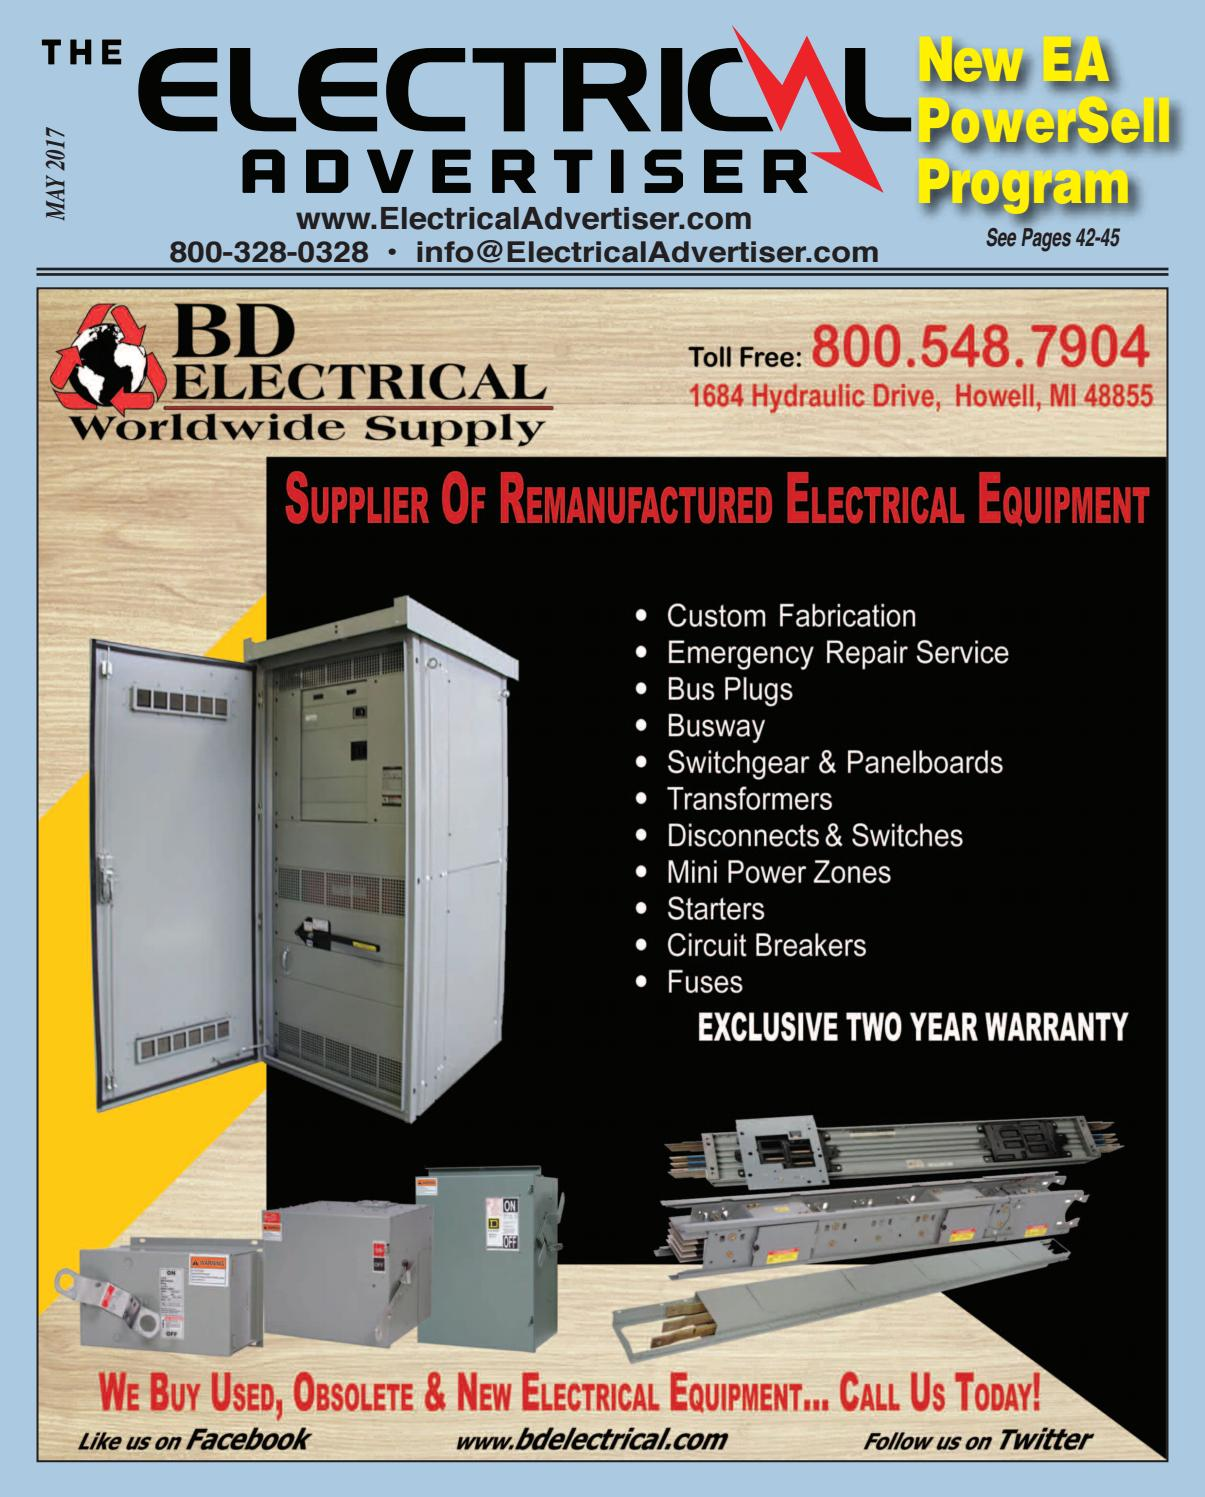 Electrical Advertiser May 2017 By Electrical Advertiser